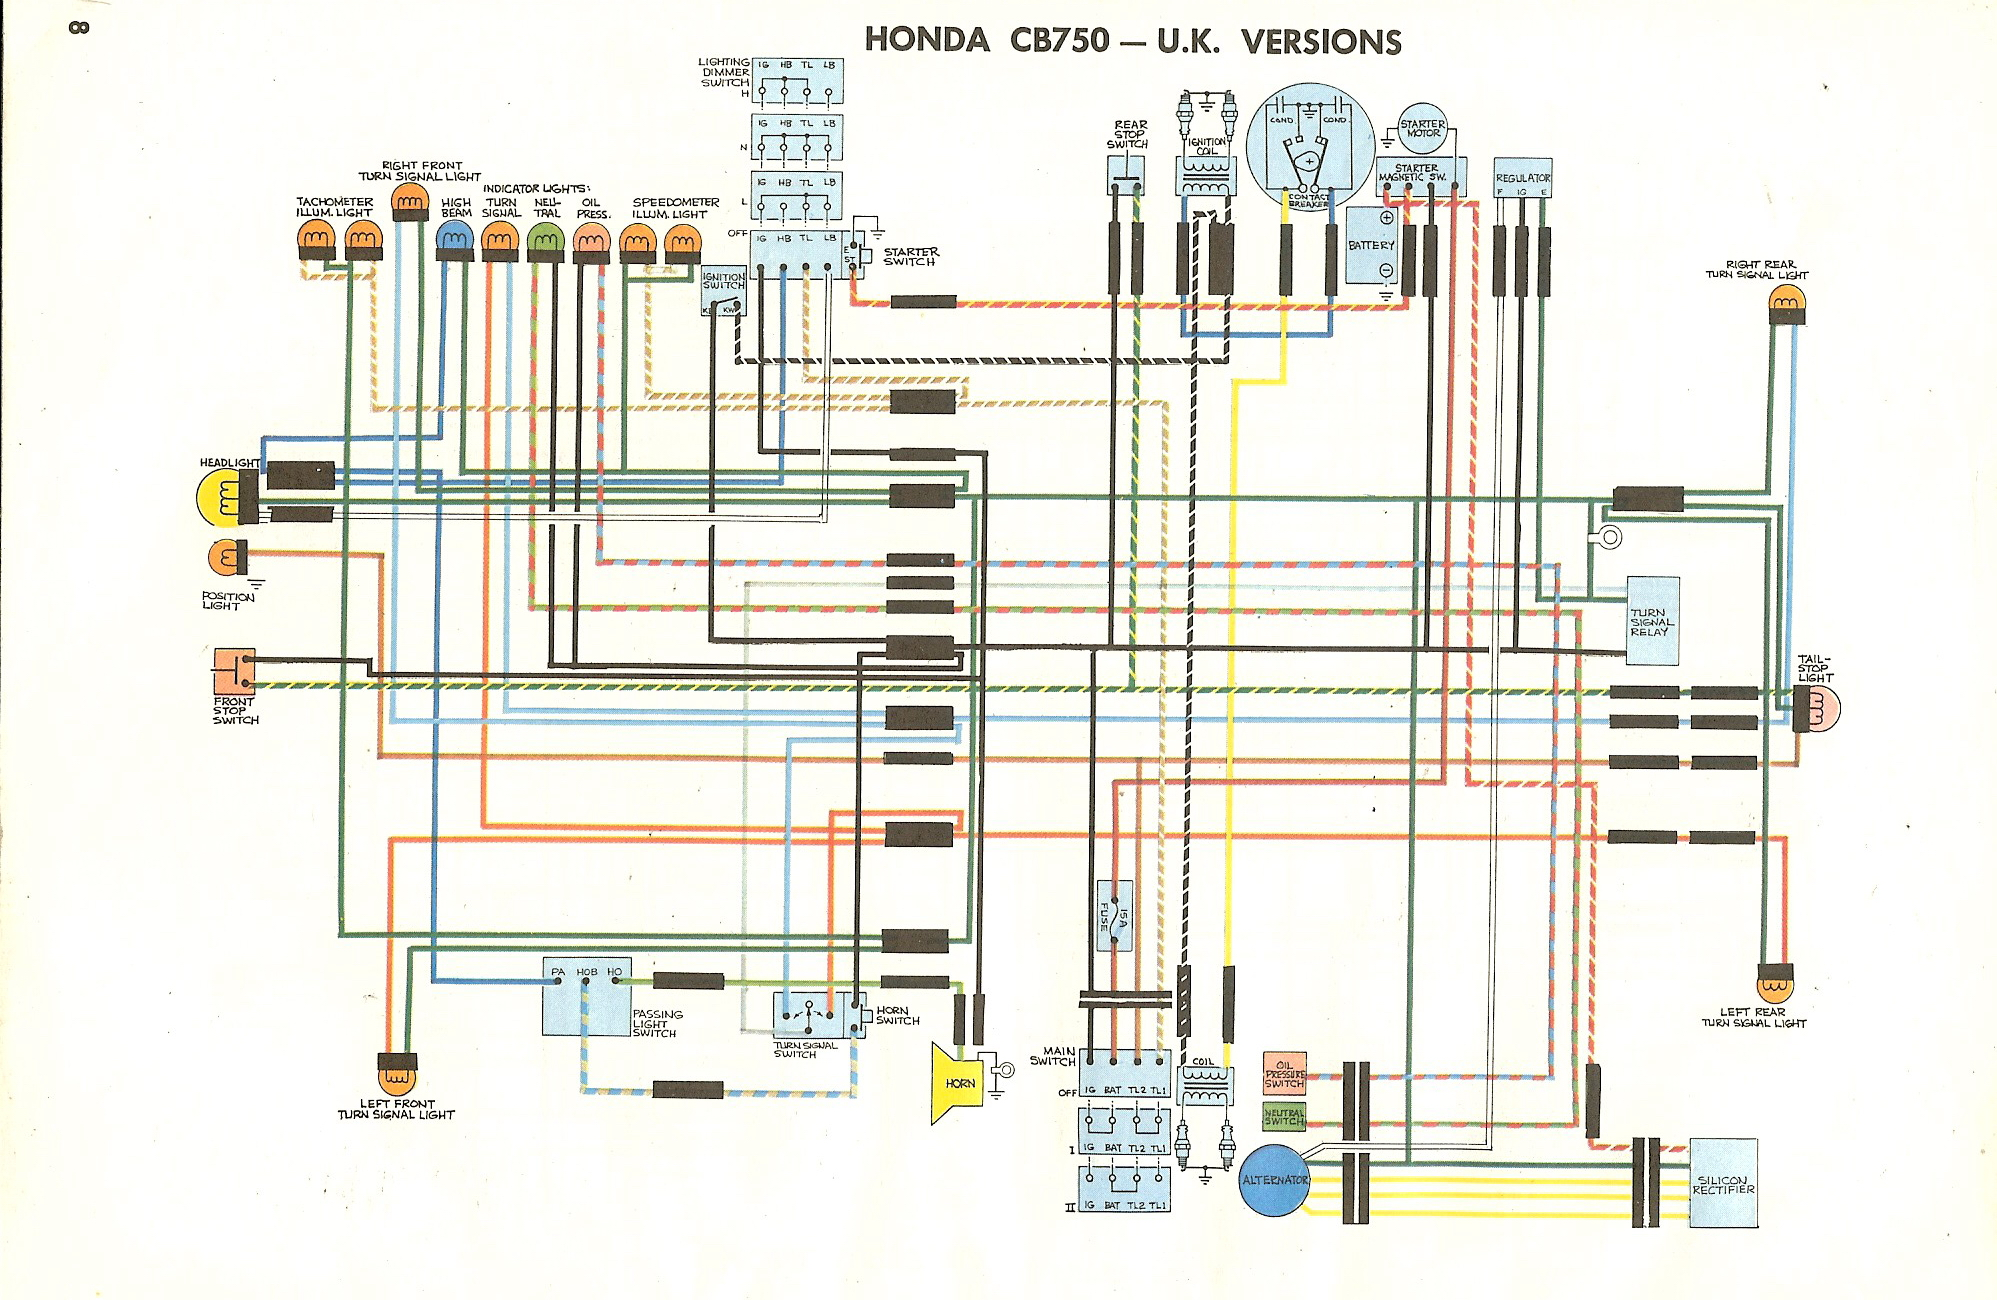 WD750UK cb750k wiring diagram motorcycle ignition wiring diagram \u2022 wiring Basic Electrical Schematic Diagrams at soozxer.org